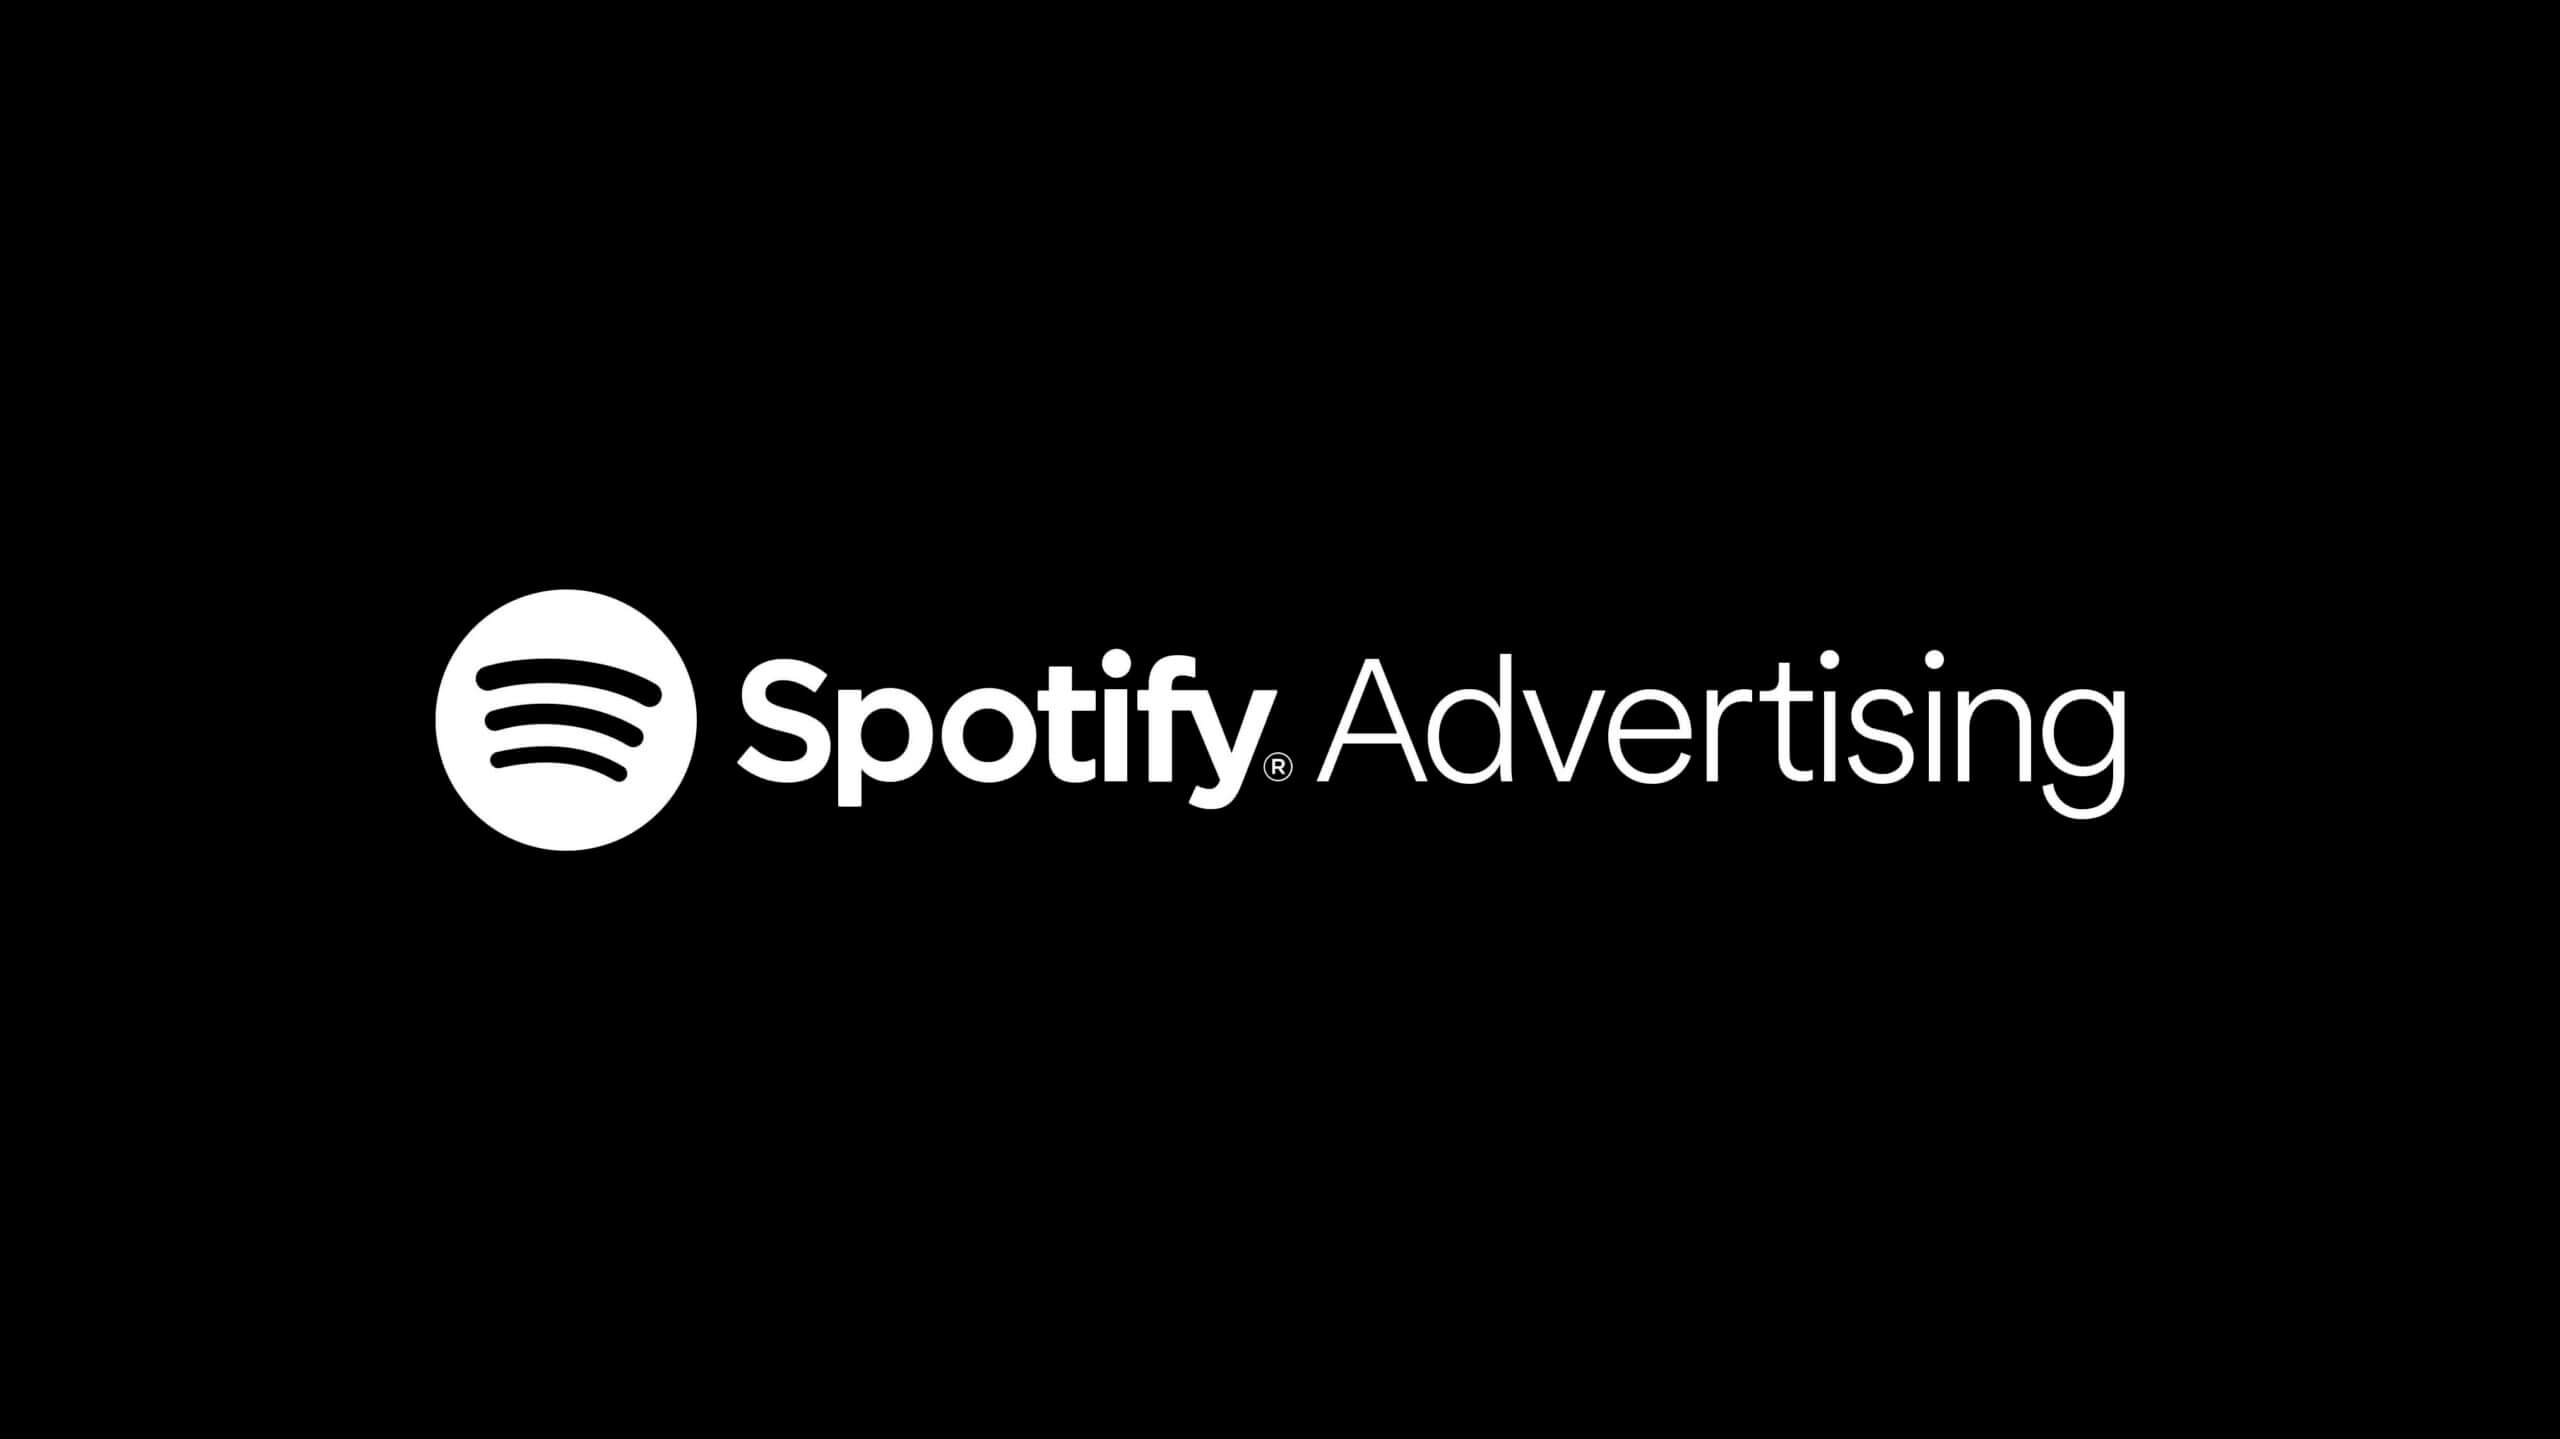 Spotify Advertising: 3 Solutions to Make the Brand Known